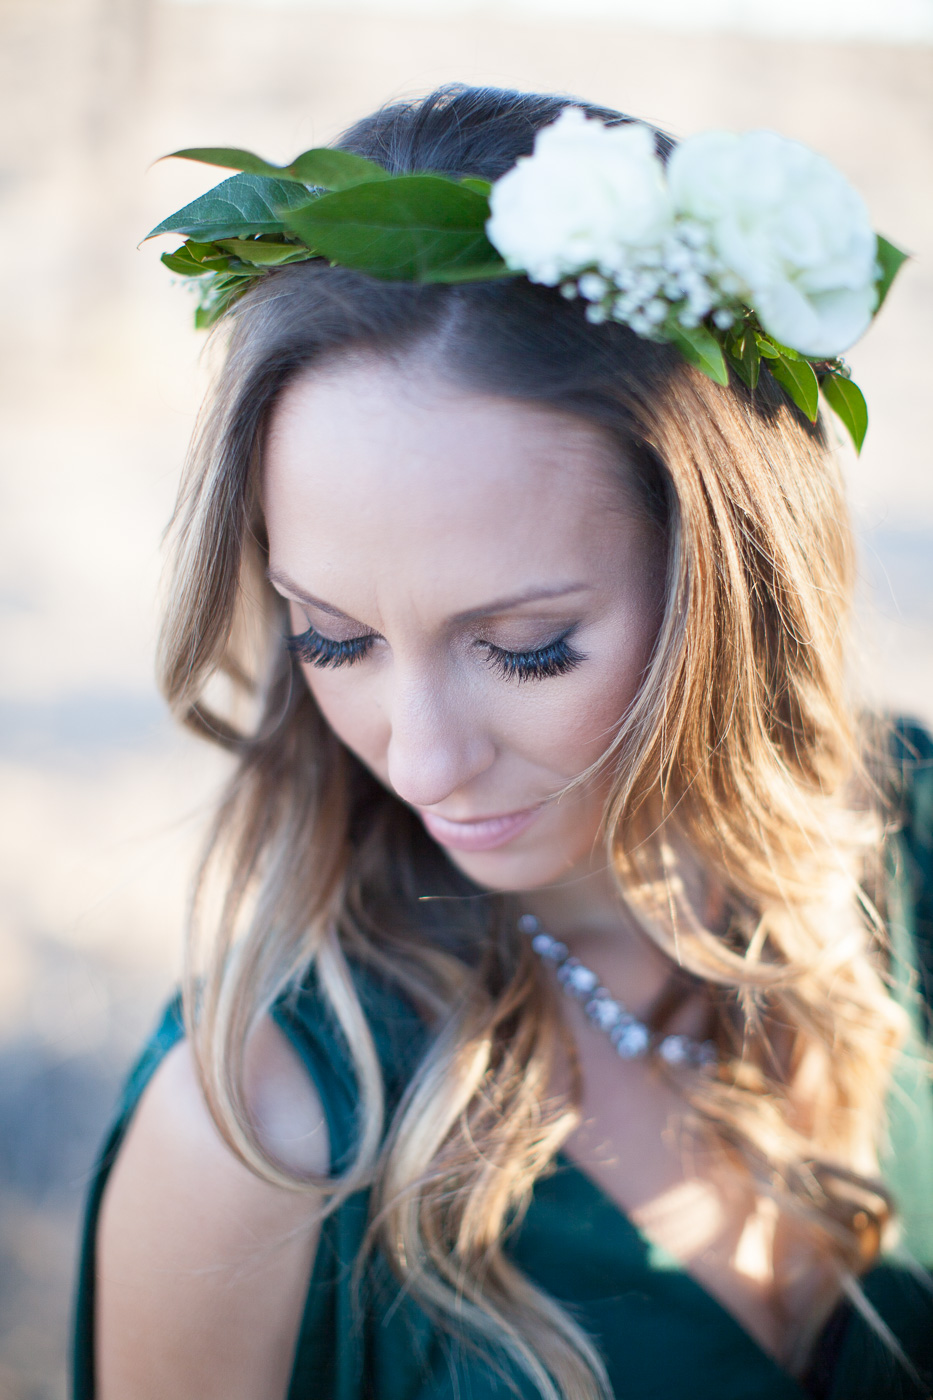 Wife in flower crown, Joshua Tree Anniversary Session | Lindsey Parkin Photography